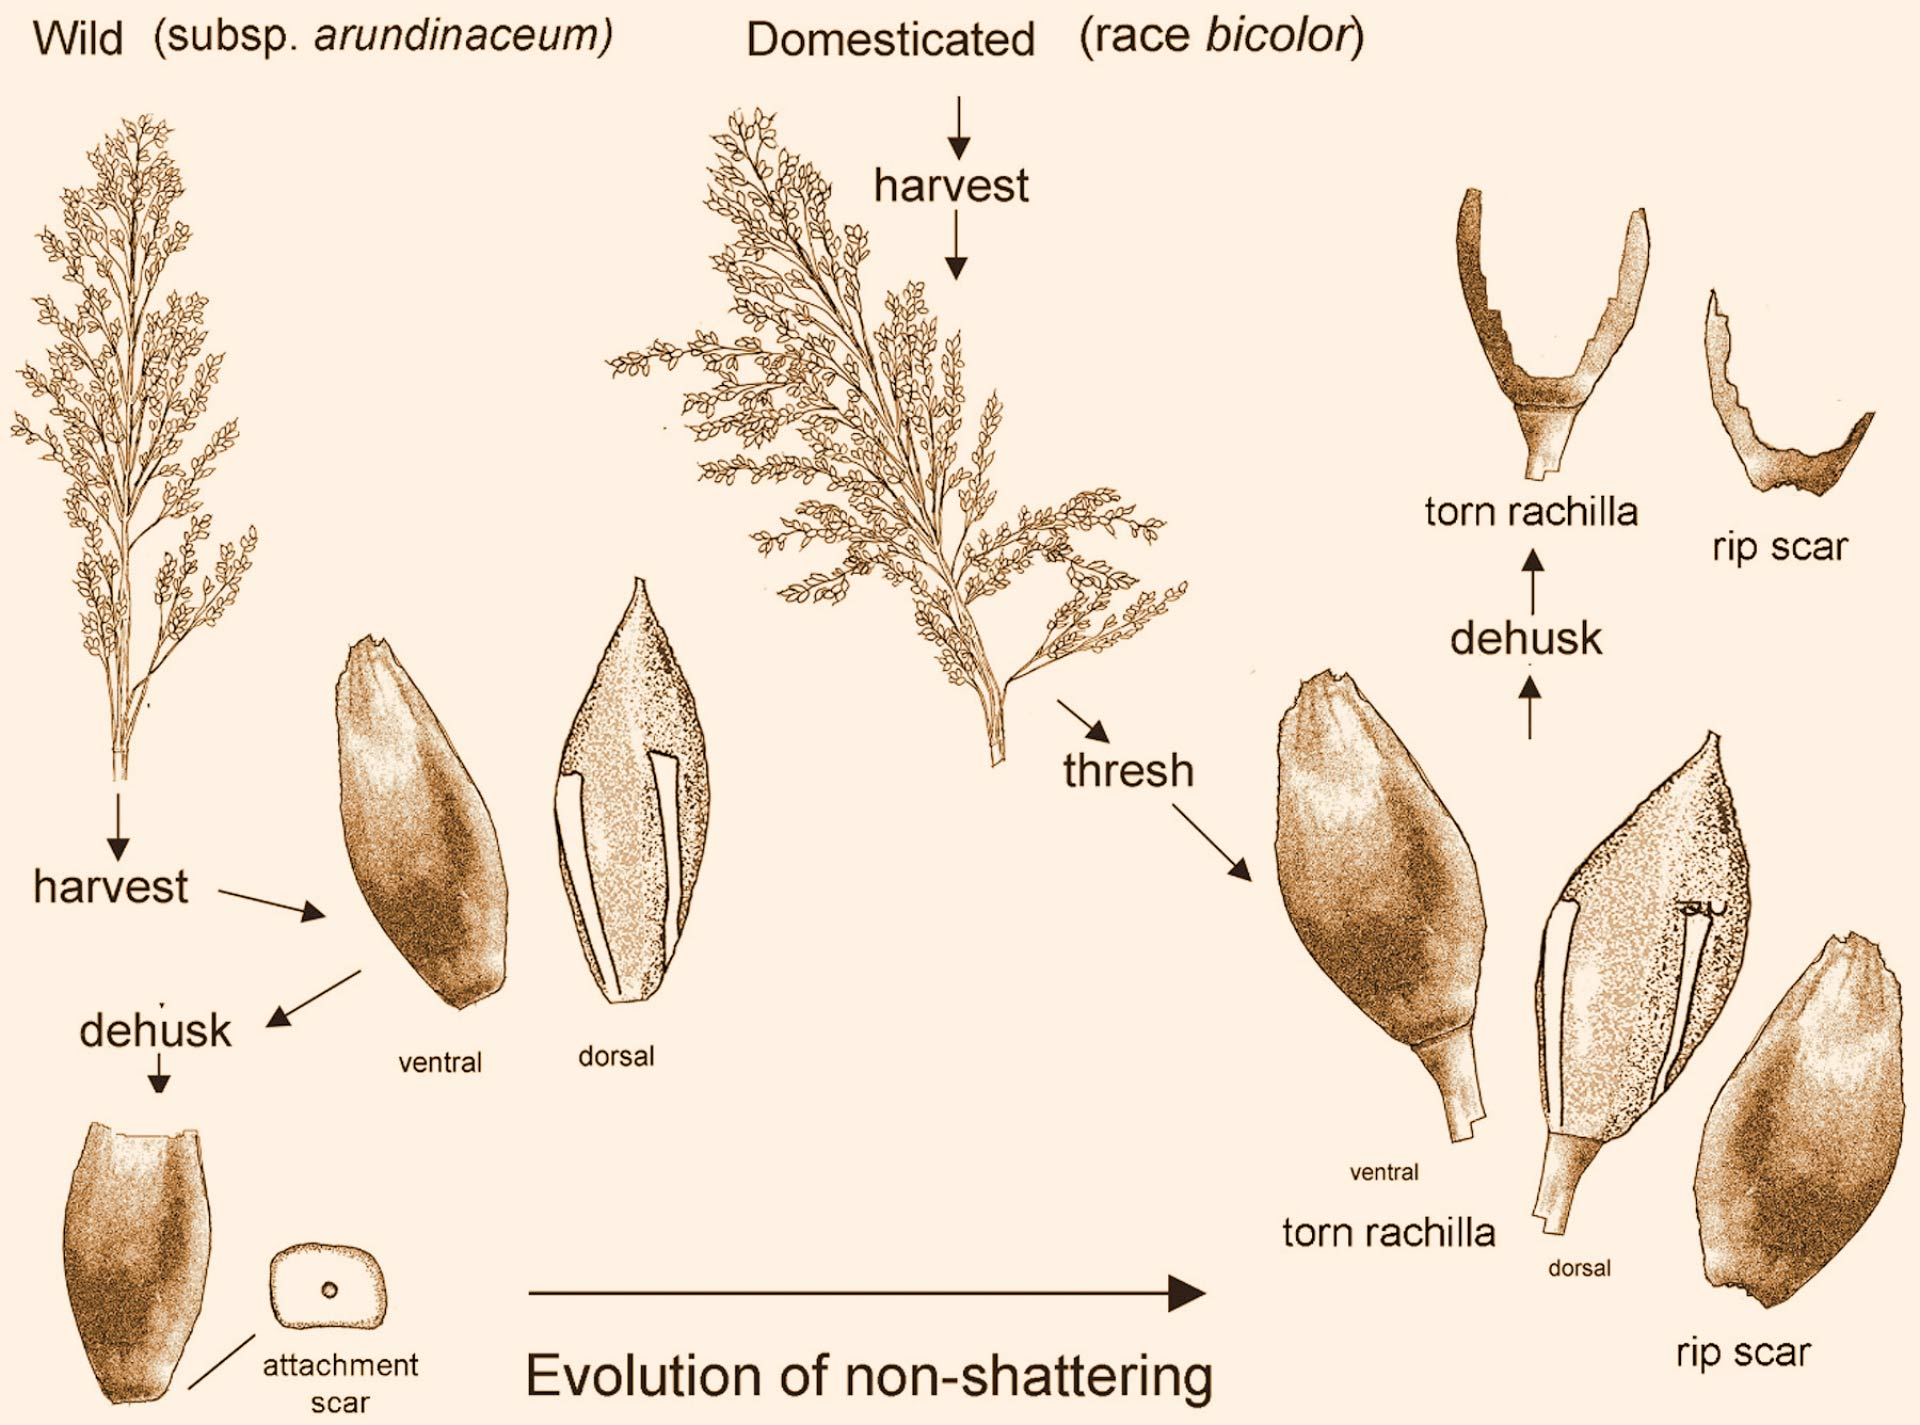 Earliest Evidence of Domesticated Sorghum Discovered